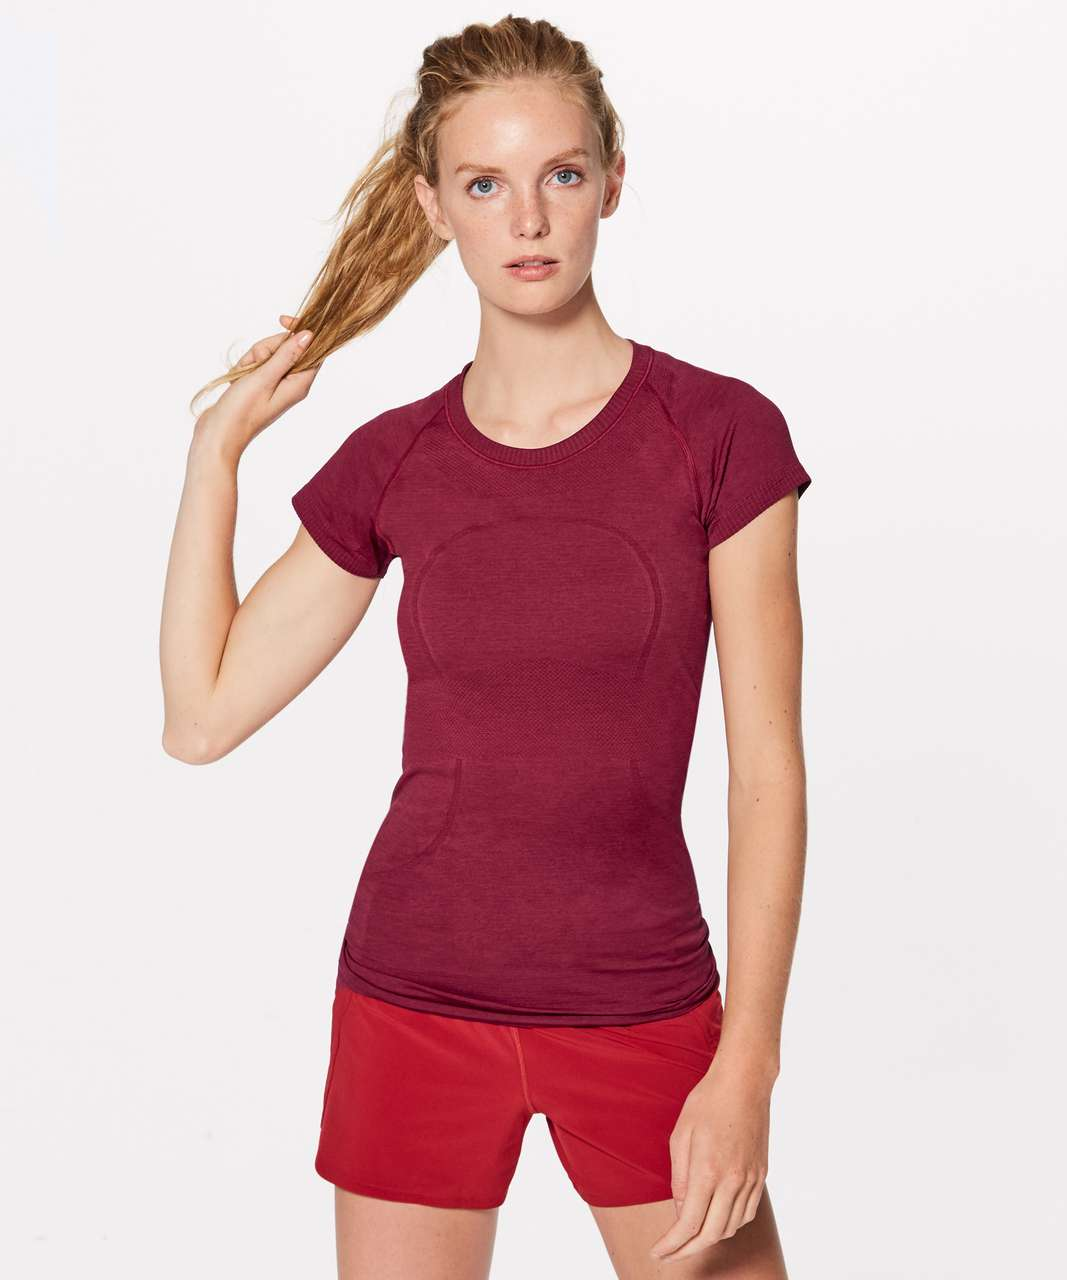 Lululemon Swiftly Tech Short Sleeve Crew - Scarlet / Scarlet